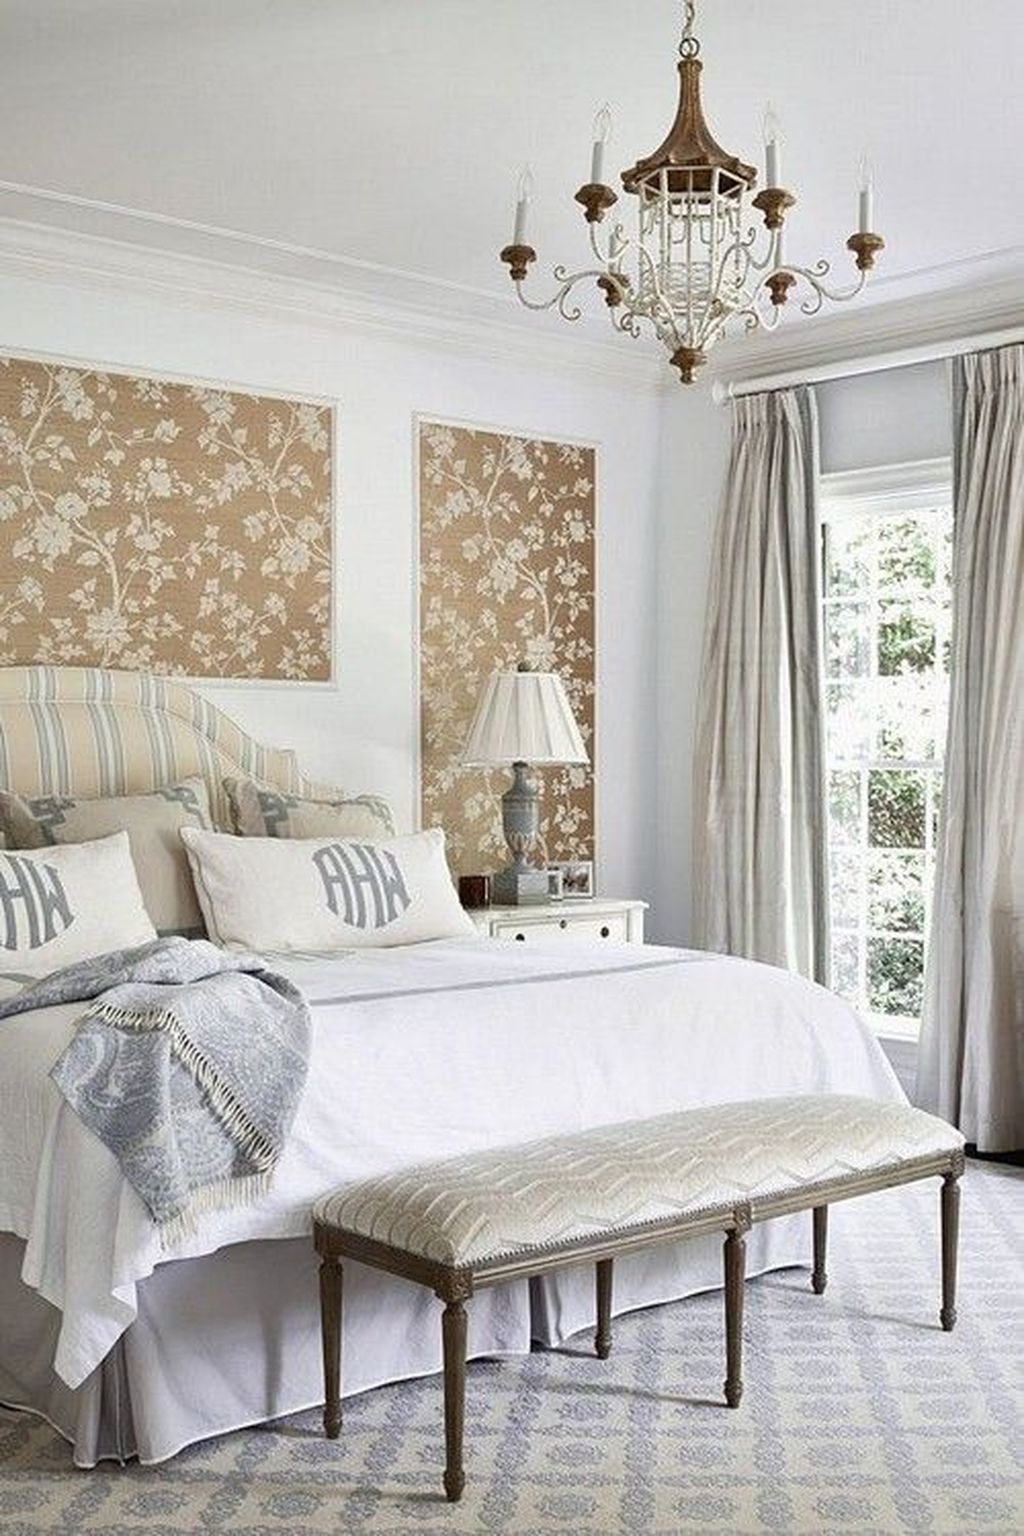 Best Bedroom Wallpaper Decor Ideas That Suitable For Your Family 04